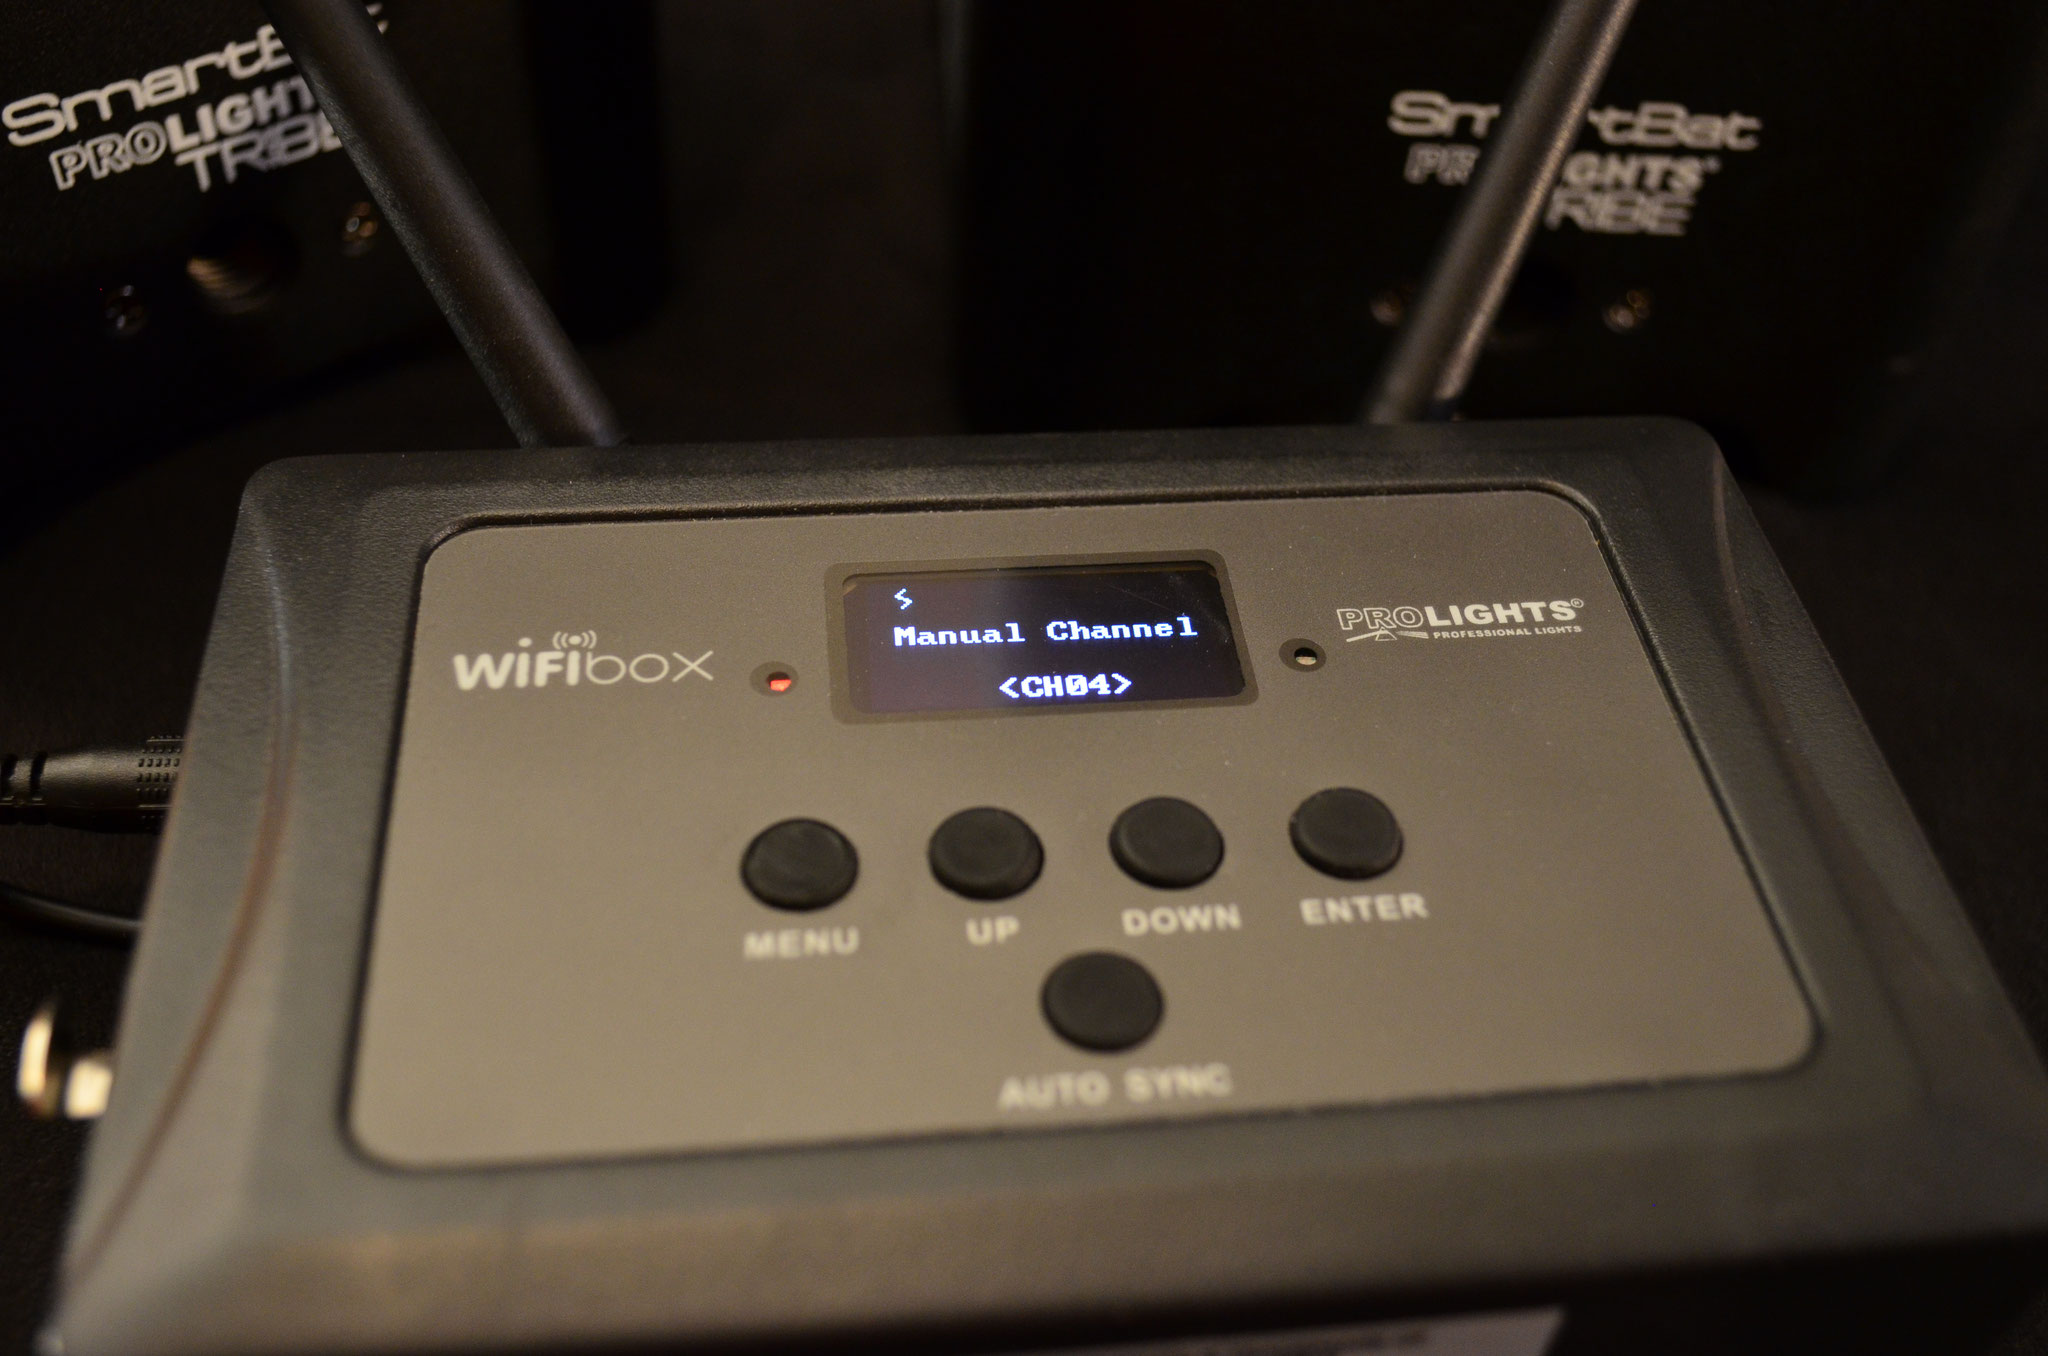 Prolights Wifibox